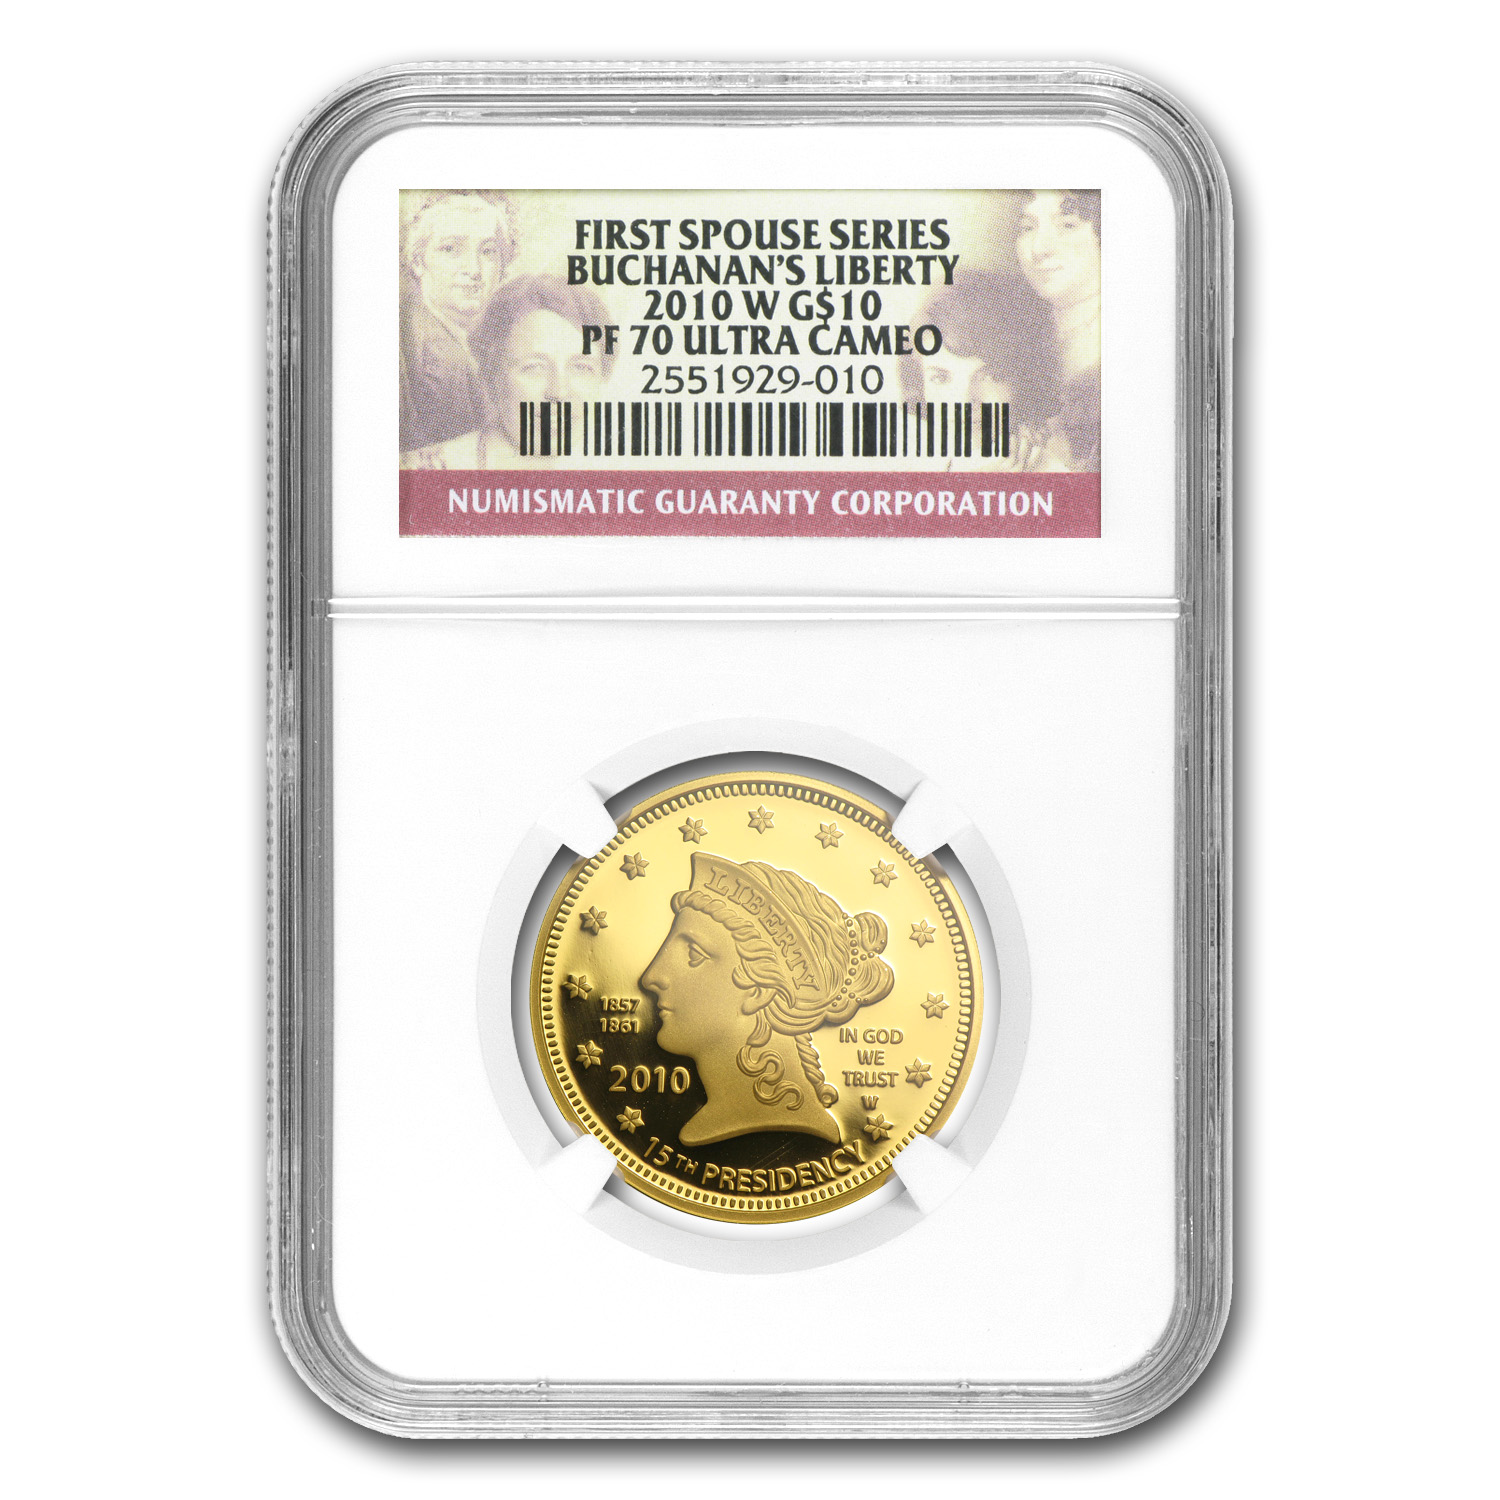 2010-W 1/2 oz Proof Gold Buchanan's Liberty PF-70 NGC